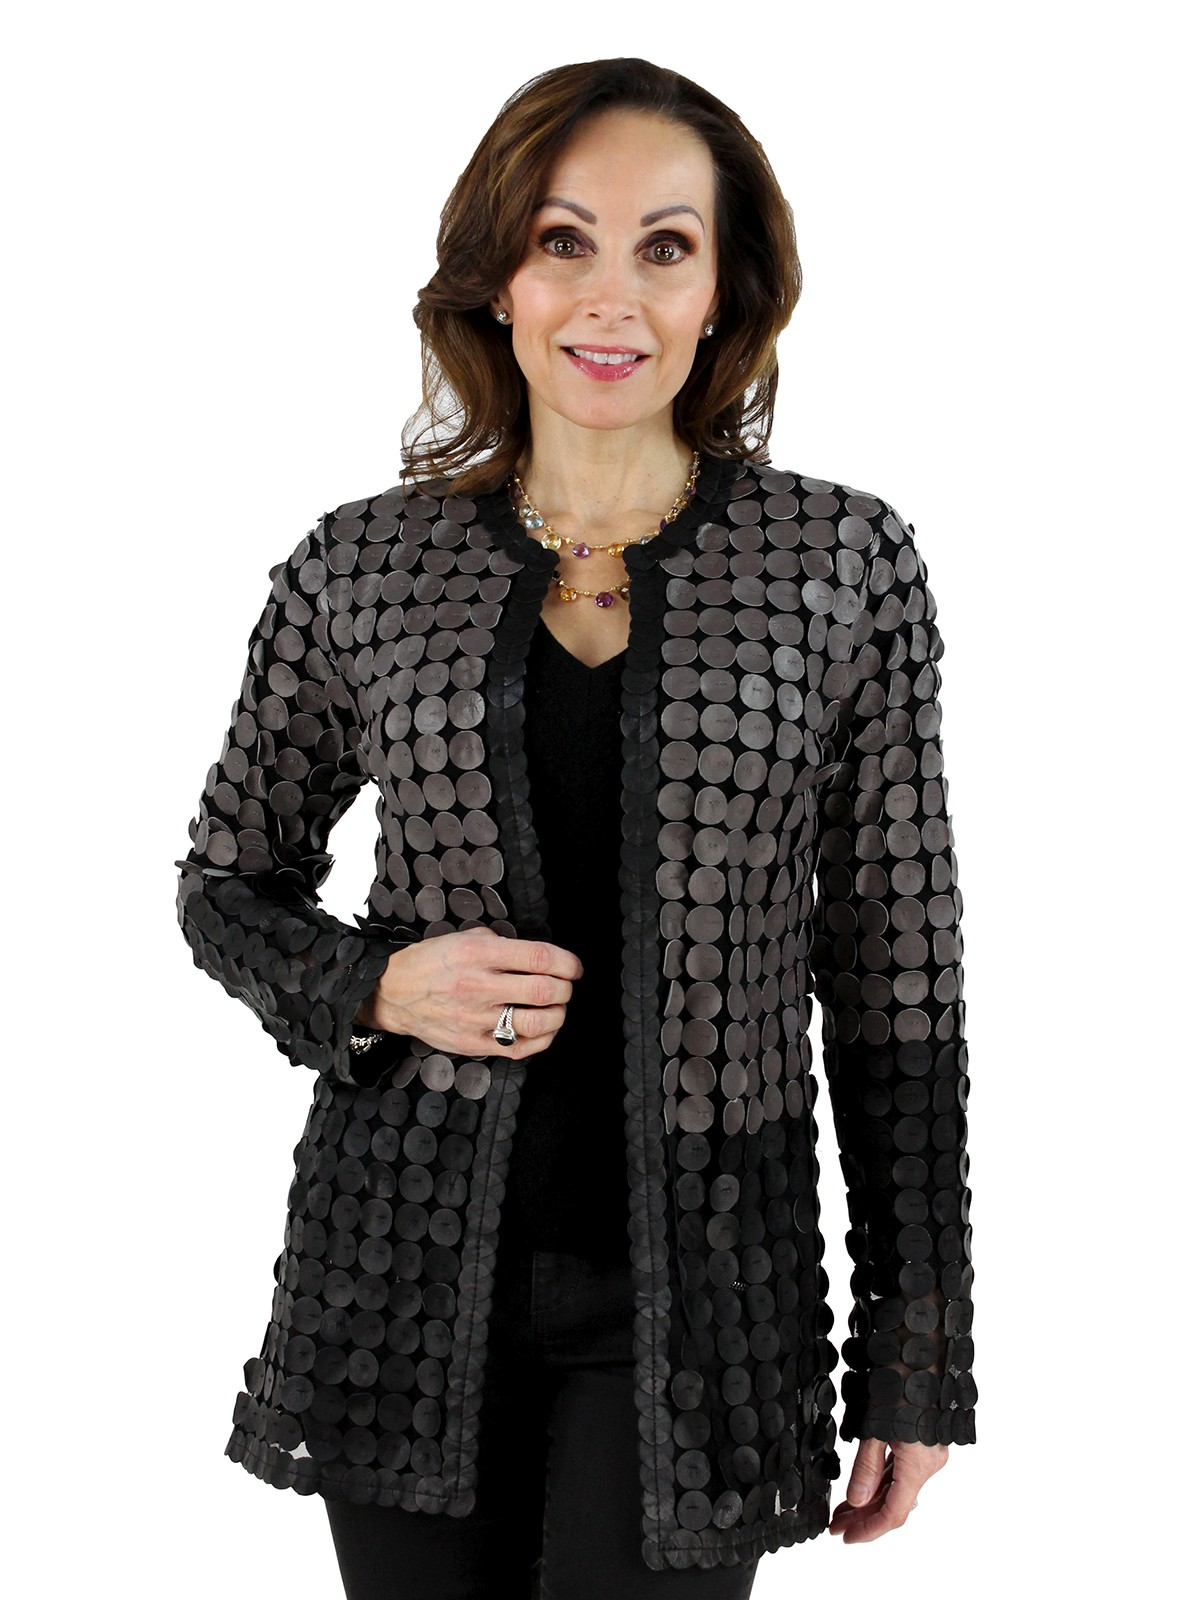 Black and Cobblestone Leather Mesh Jacket